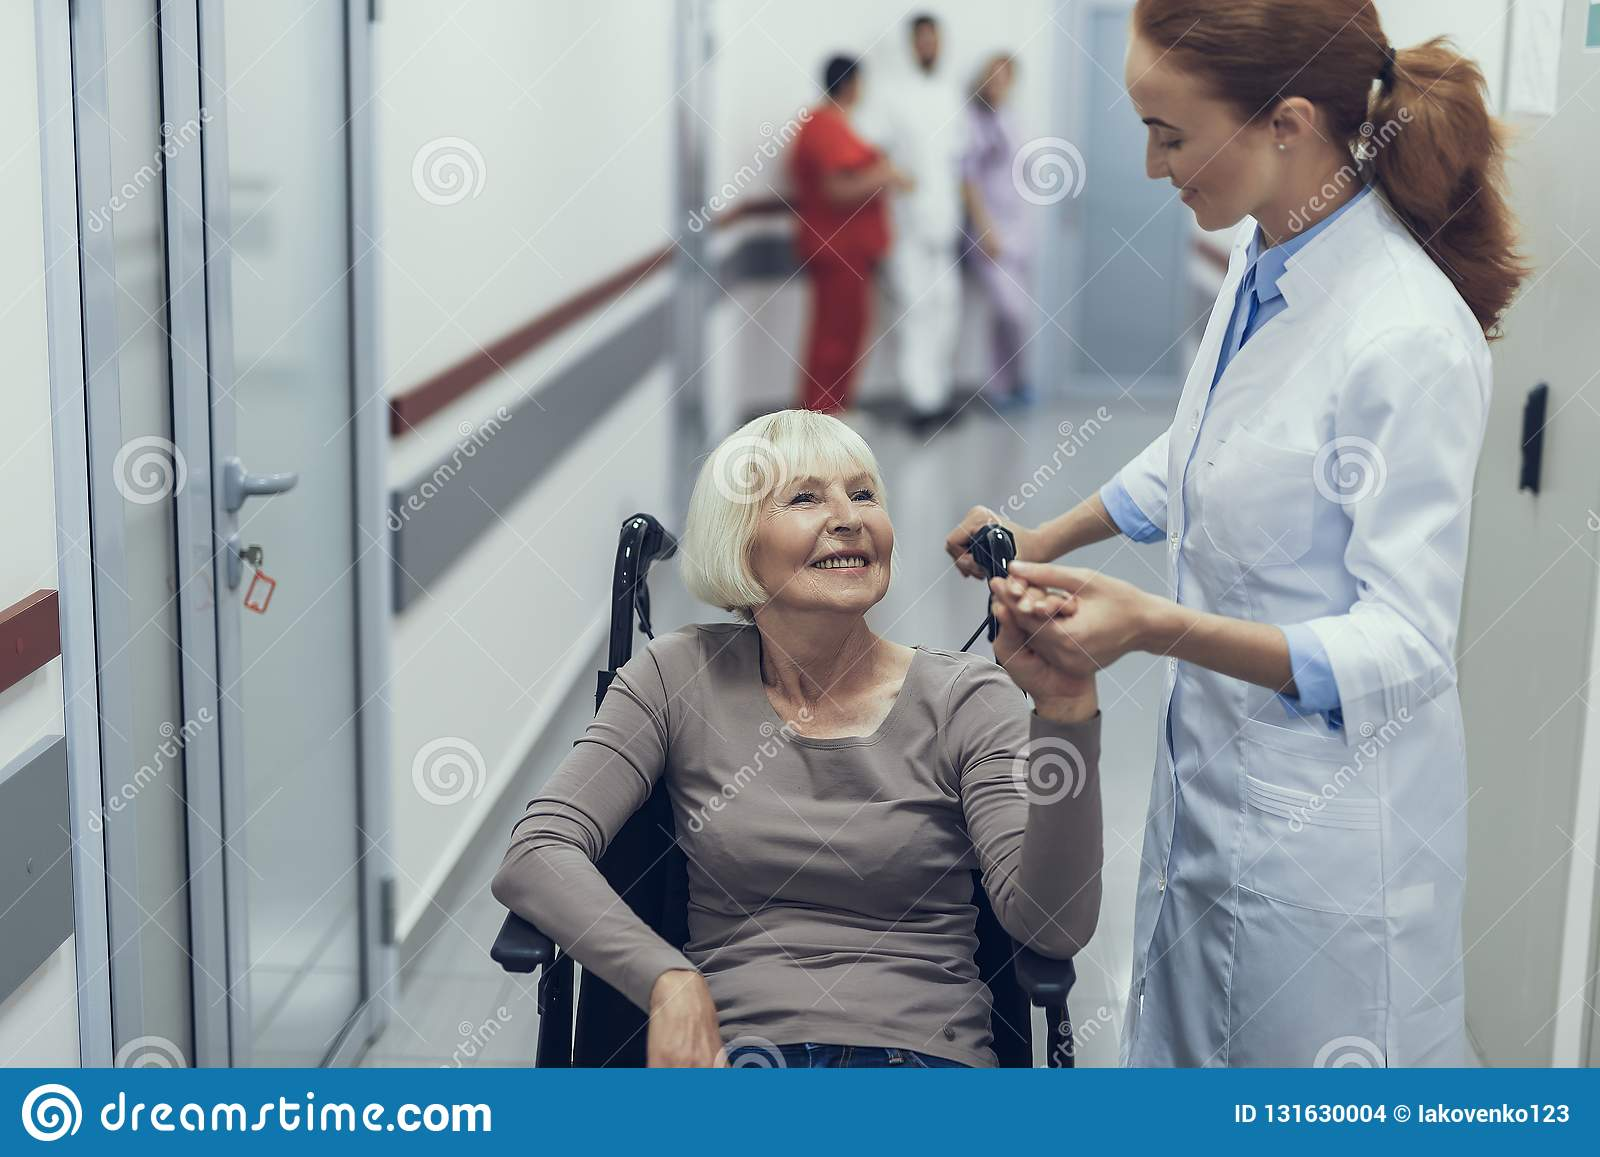 Cheerful lady on pushchair is talking to female doctor